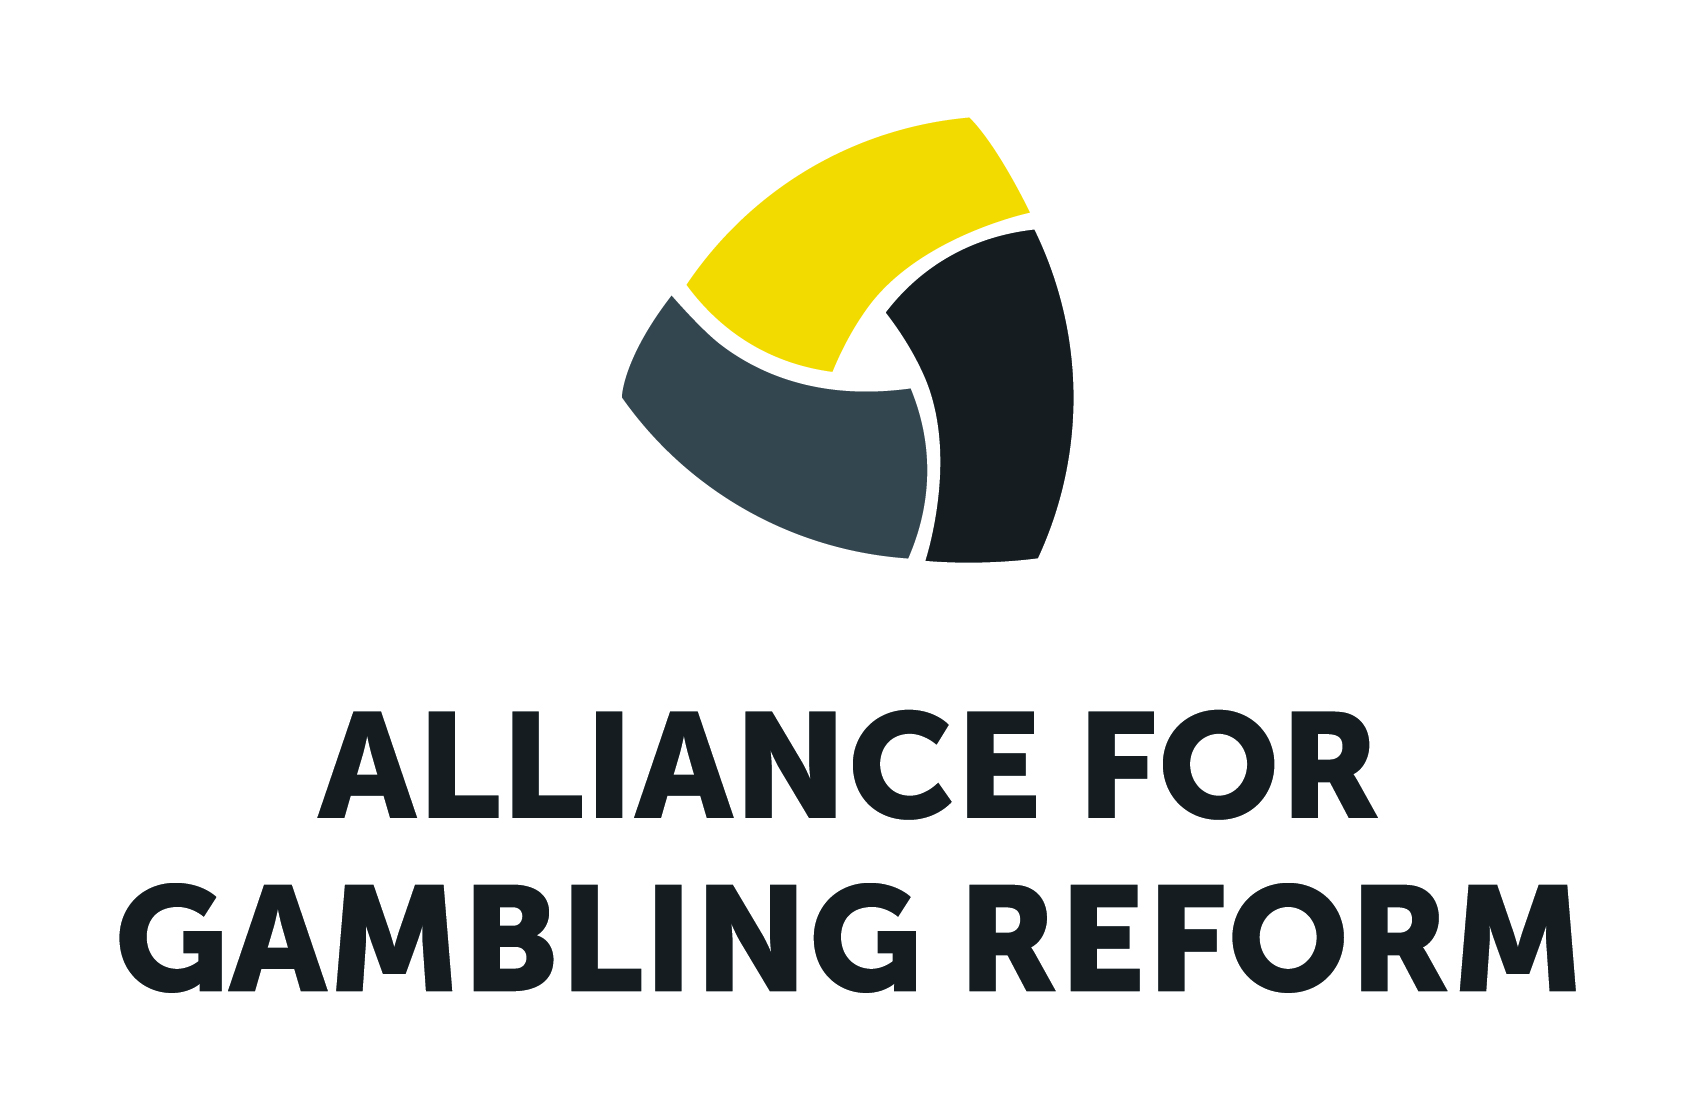 inthenews - Alliance for Gambling Reform